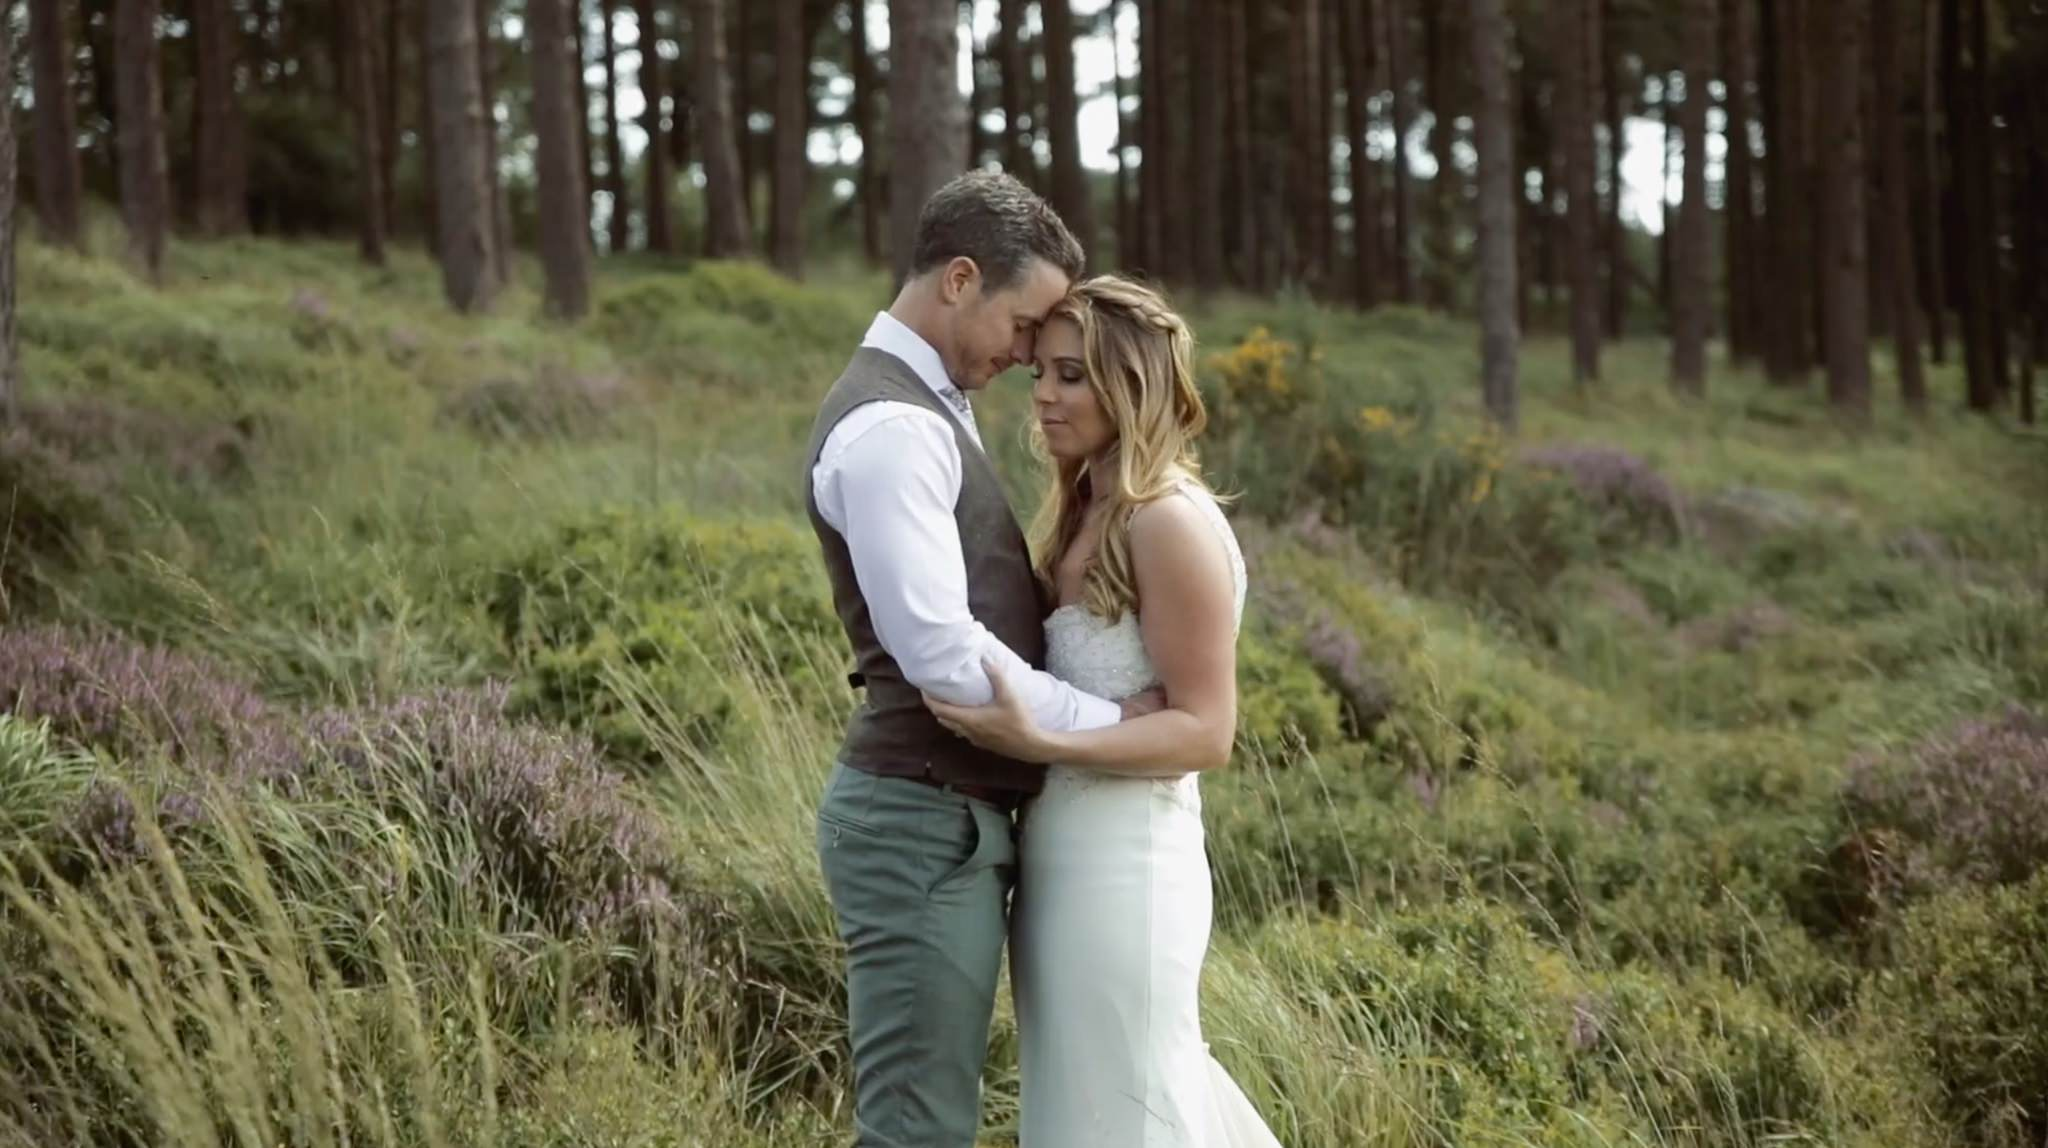 Wedding videographer dublin